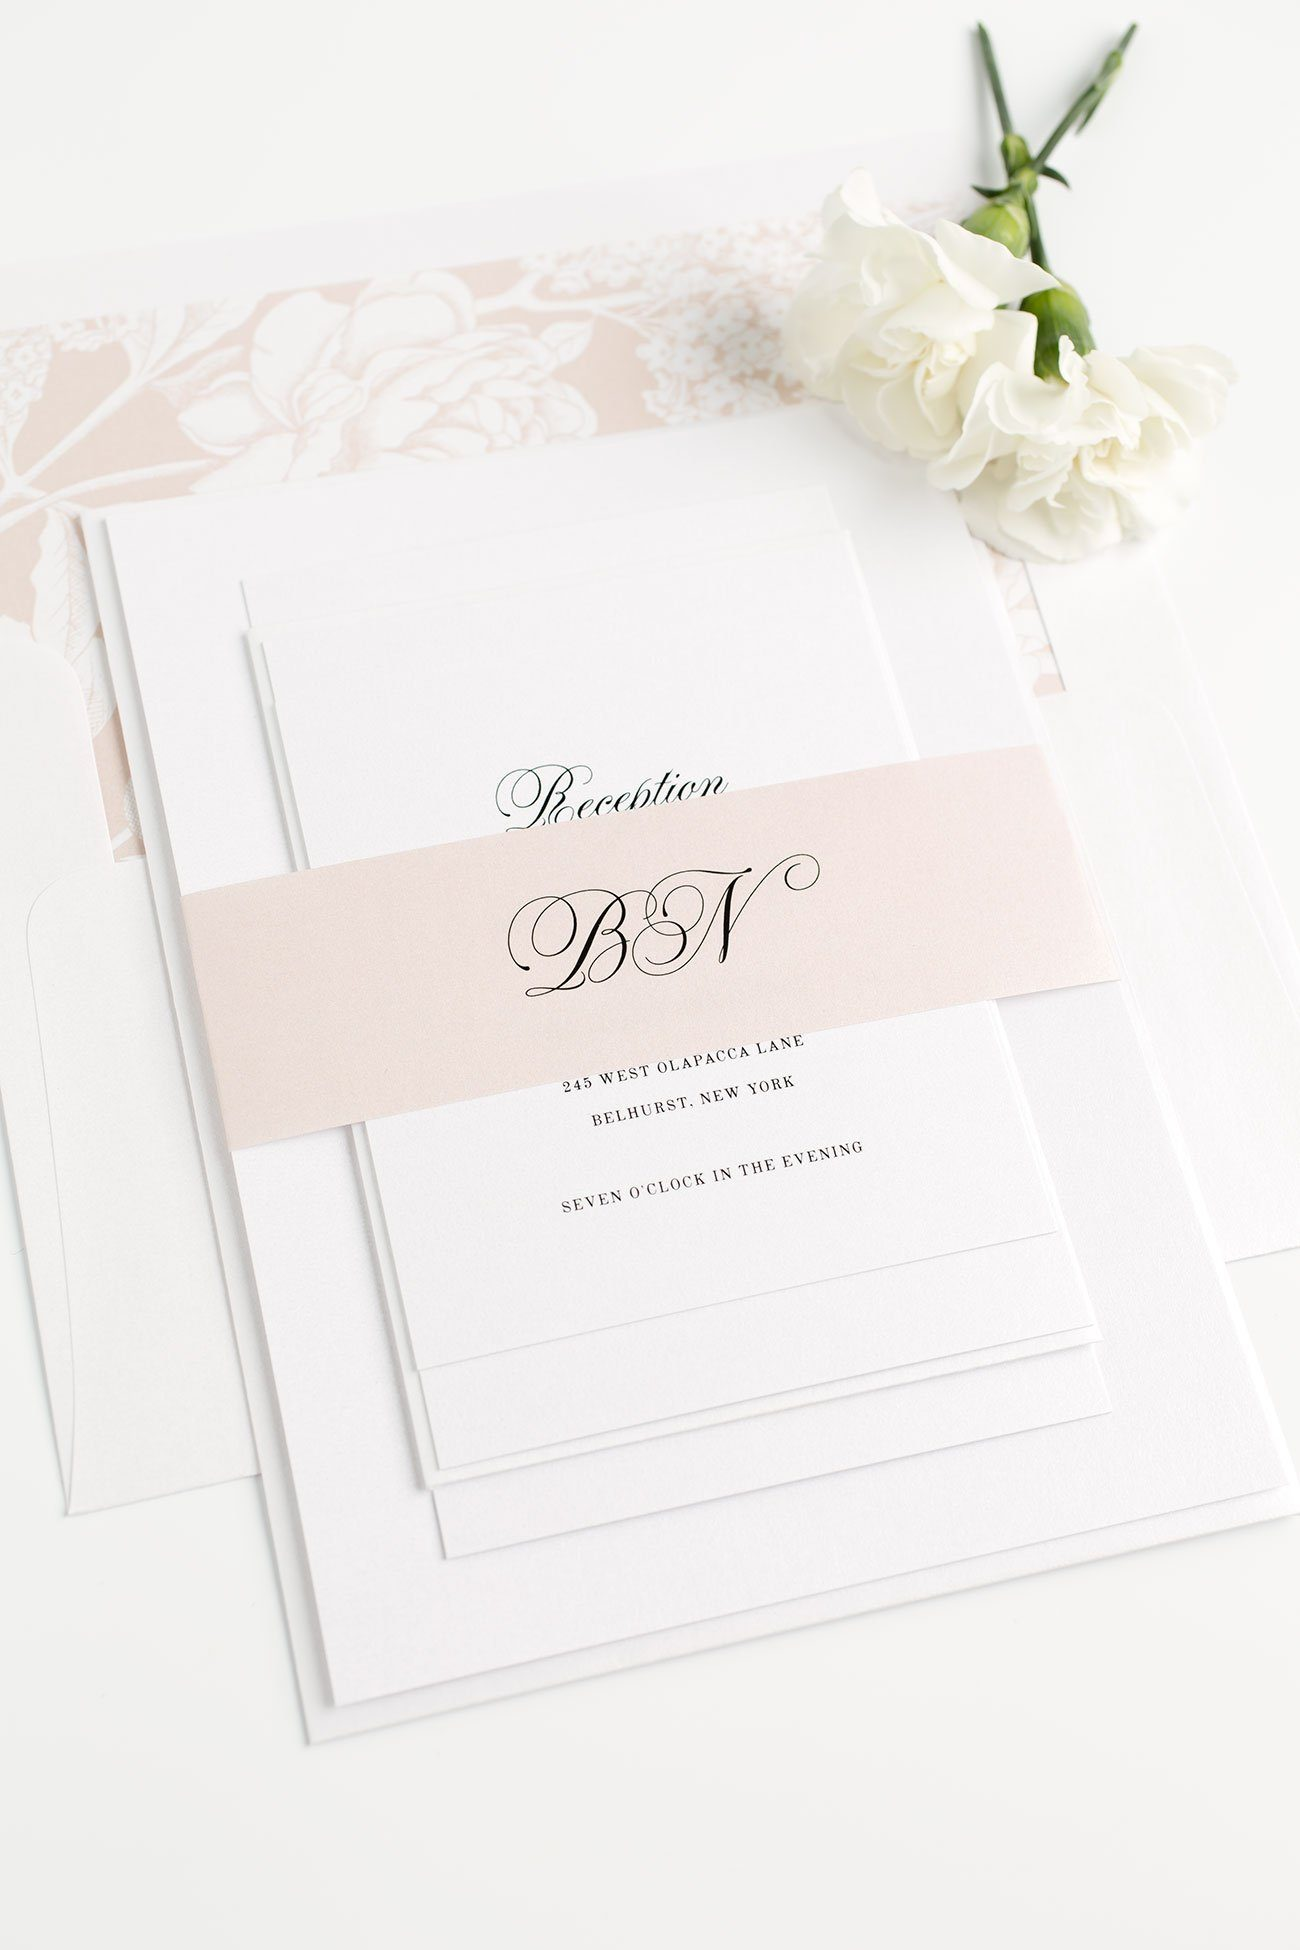 Romantic Wedding Invitations in Rose Gold with Floral Accents